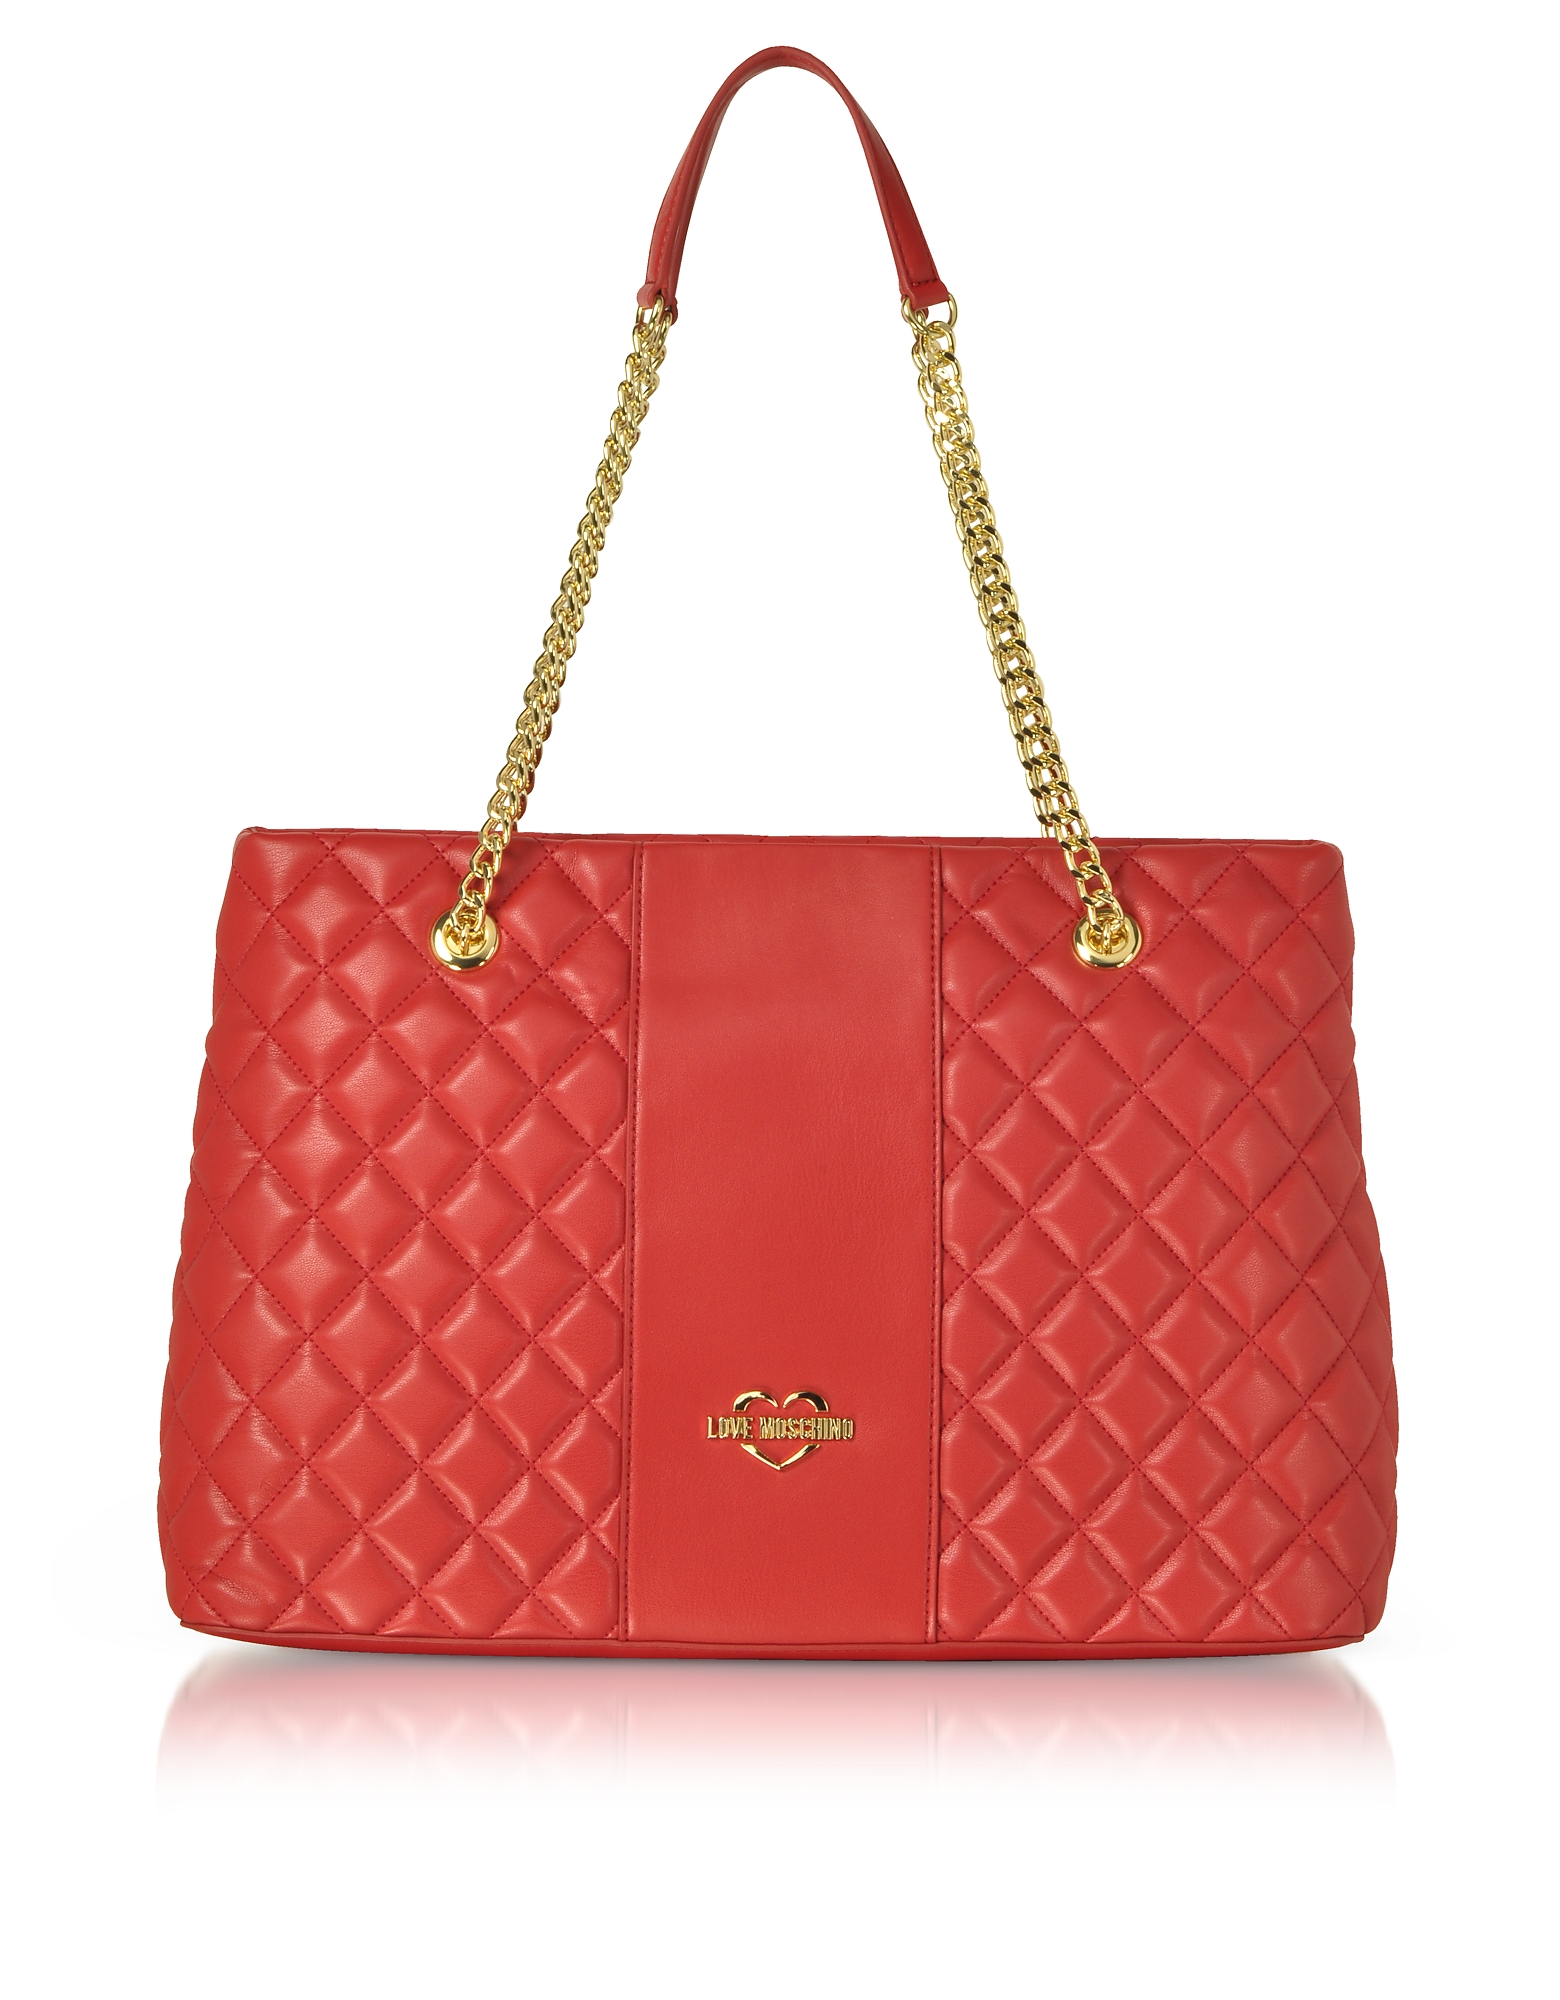 LOVE MOSCHINO Quilted Eco Leather Tote Bag in Red